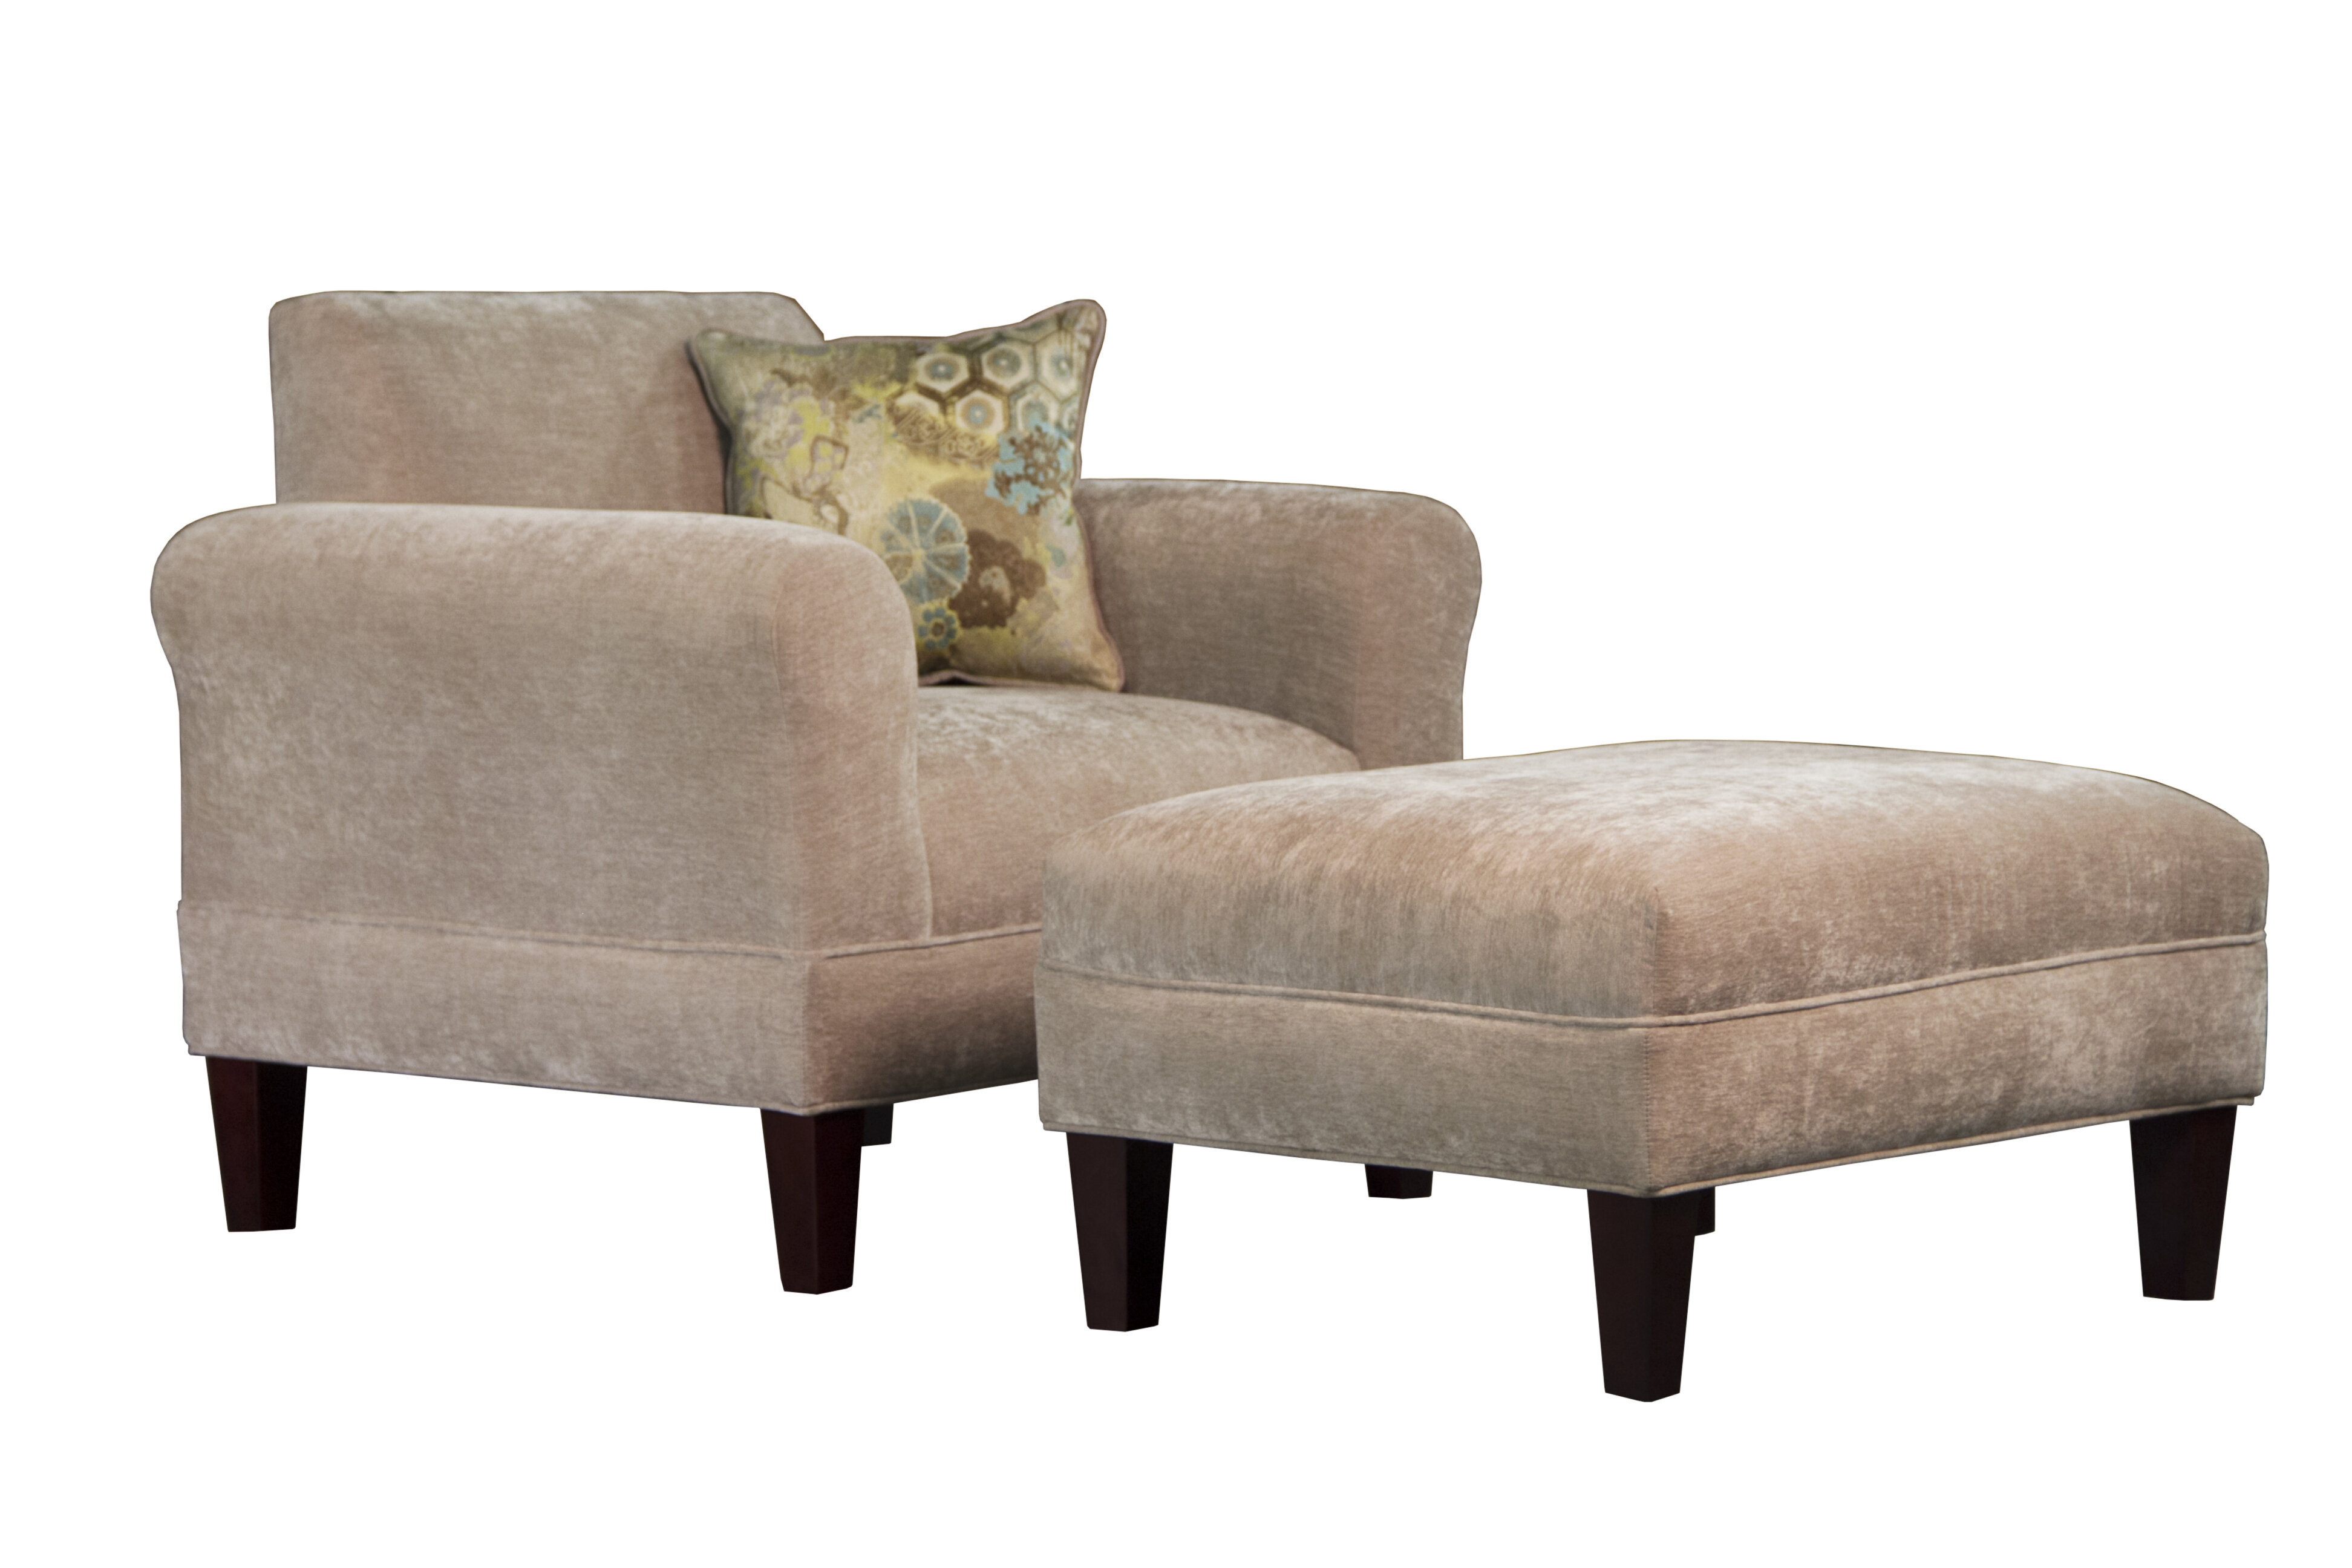 Carolina Accents Tracy Porter Armchair And Ottoman With Accent Pillow |  Wayfair